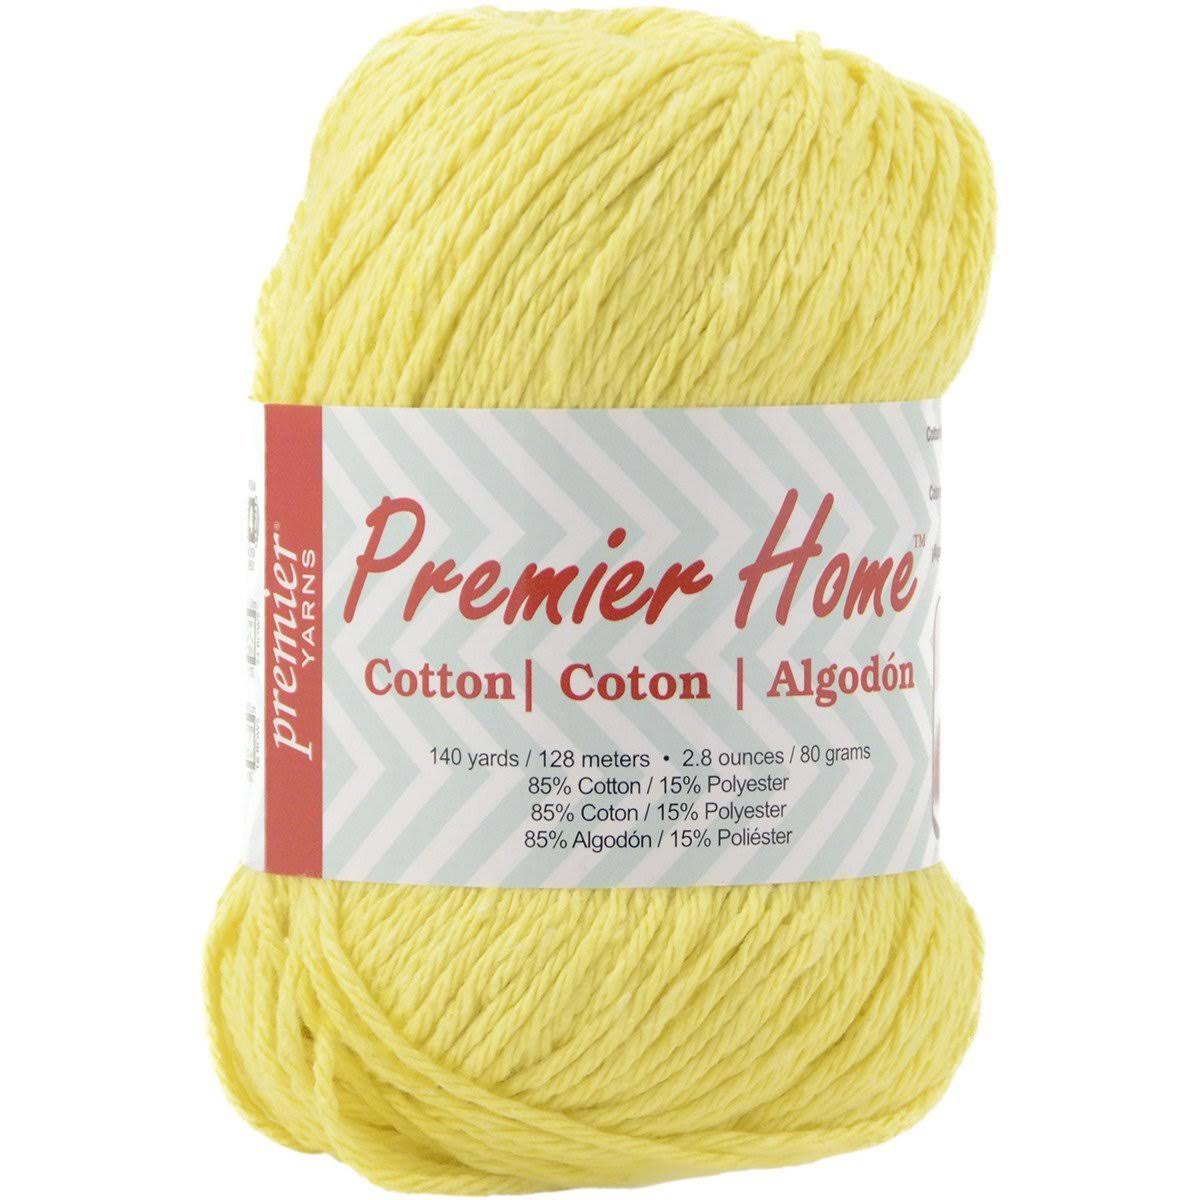 Premier Home Cotton Yarn - Sunflower, 140yds